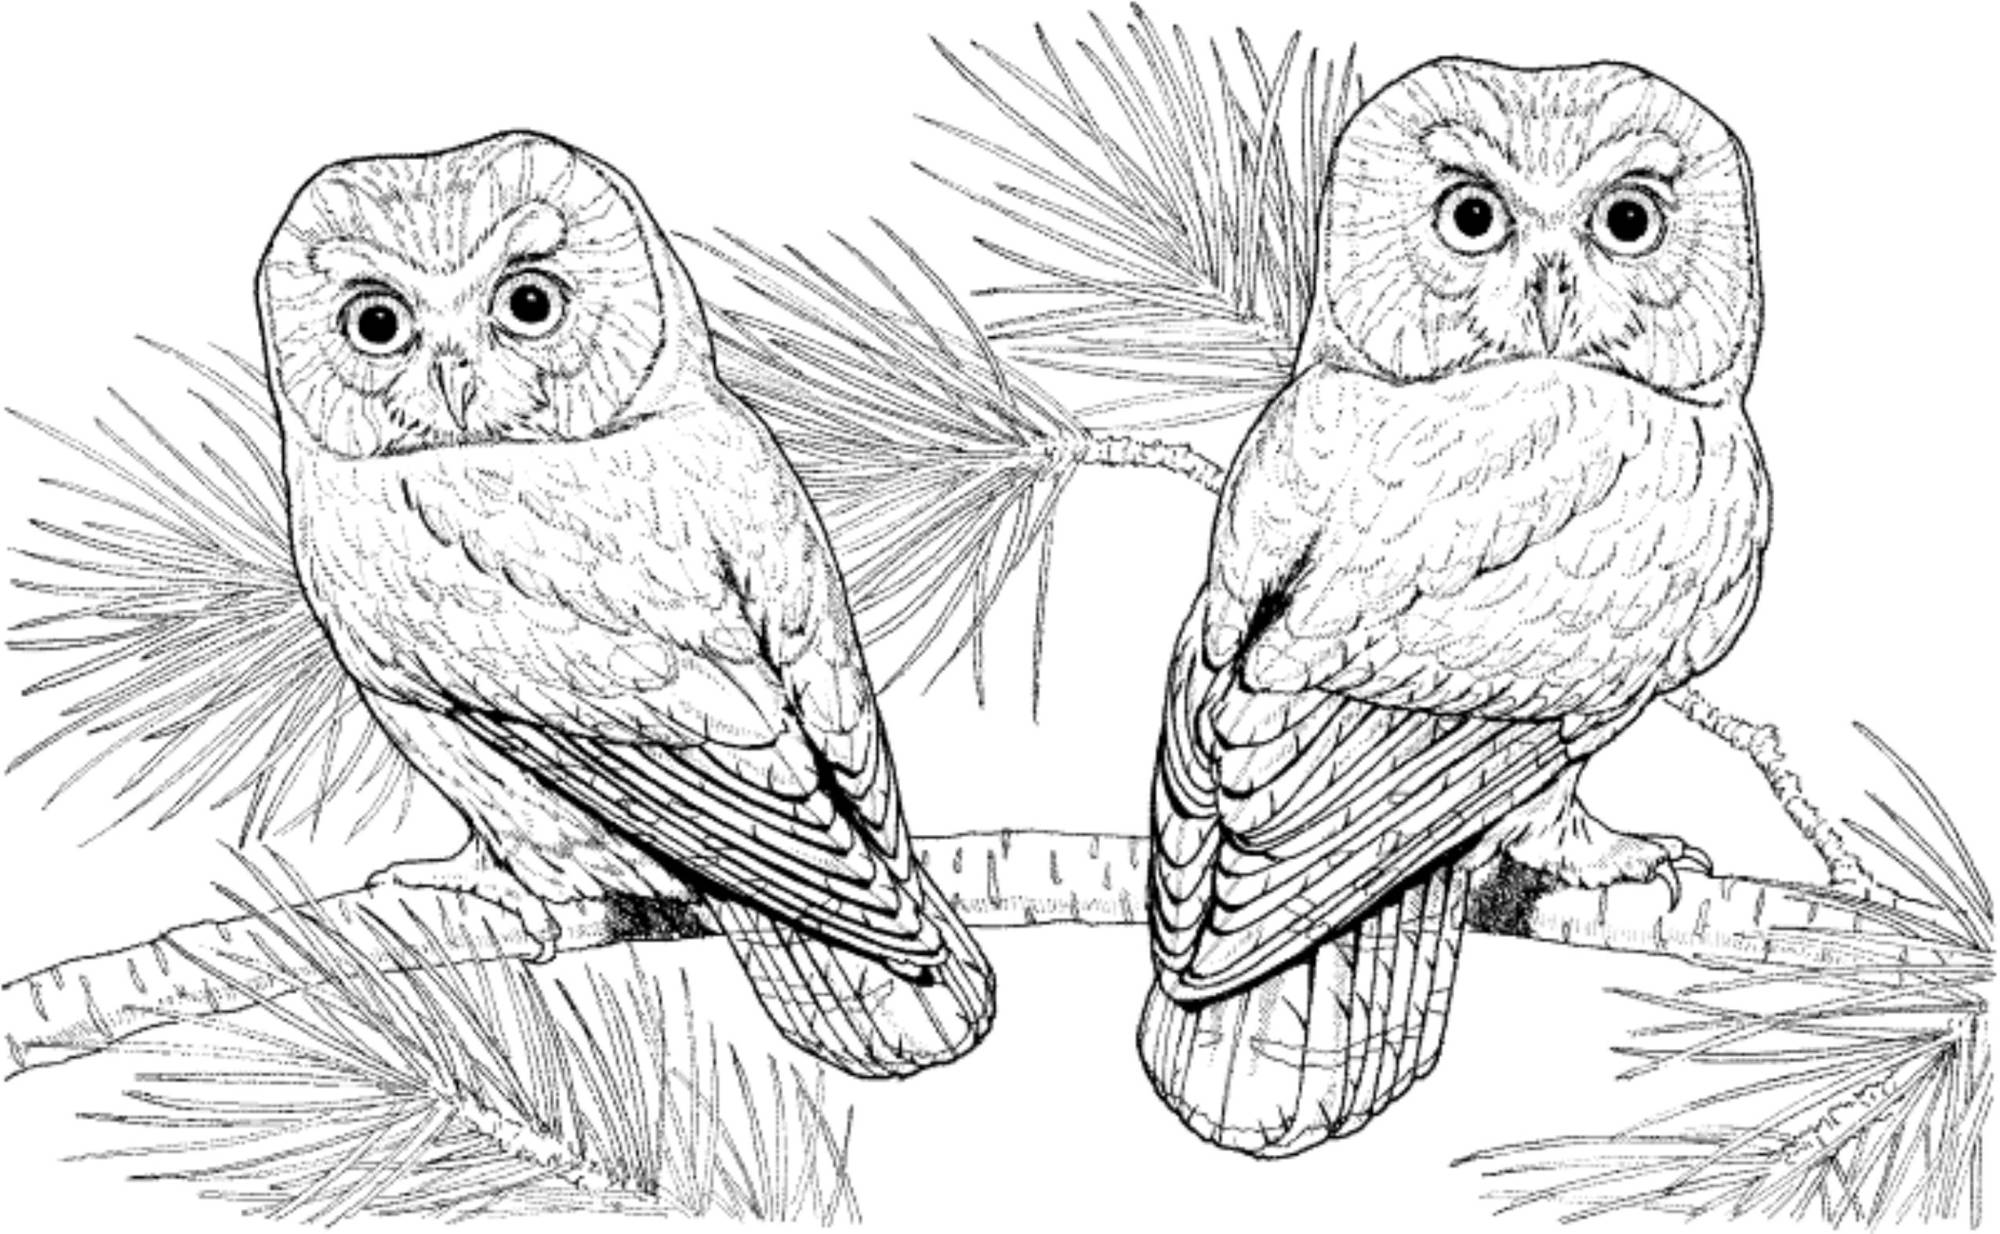 owl coloring images difficult owl coloring pages bestappsforkidscom images coloring owl